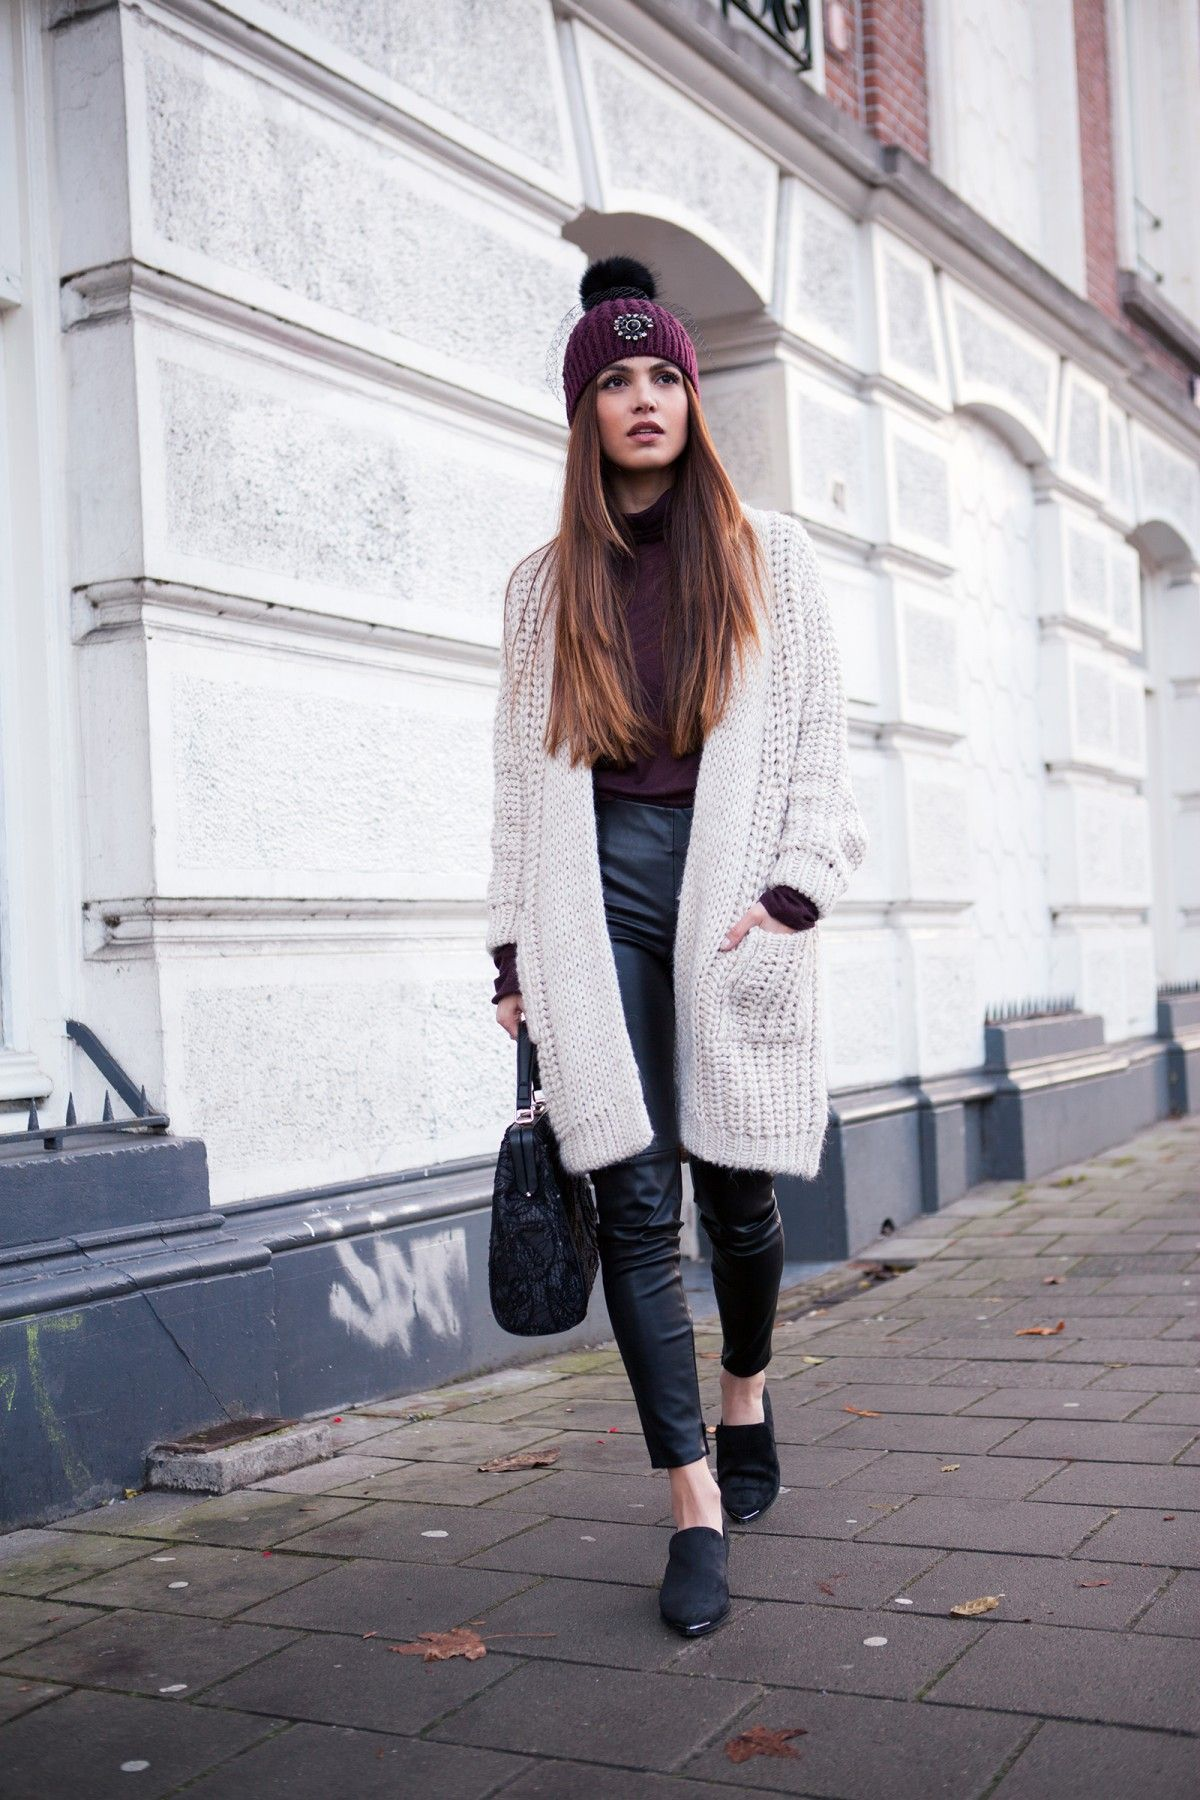 long cardigan outfits an autumn fashion trend | long knit